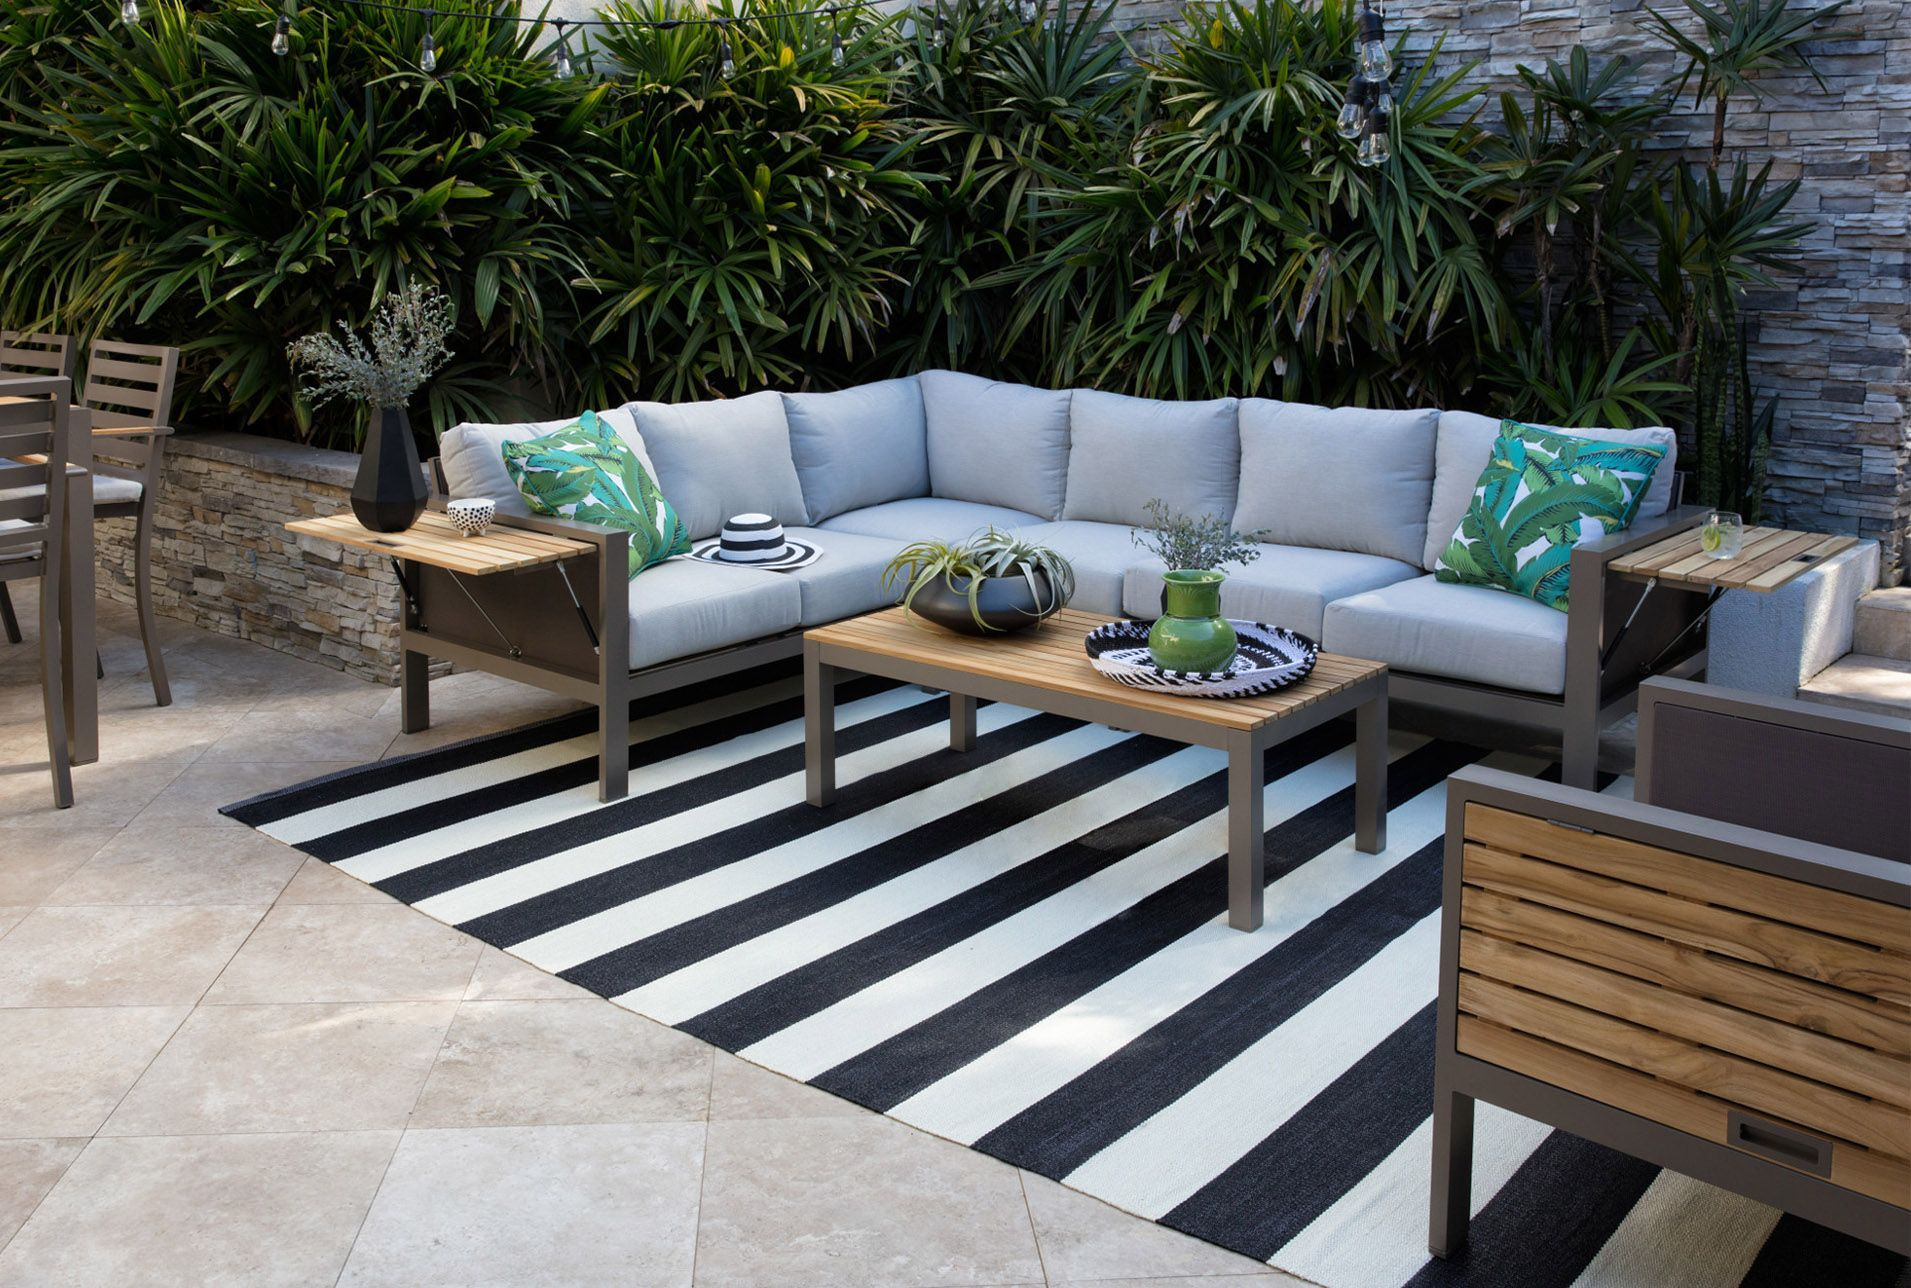 96x132 Outdoor Rug Black White Cabana Stripe In 2020 Patio Decor Outdoor Rugs Cheap Patio Furniture